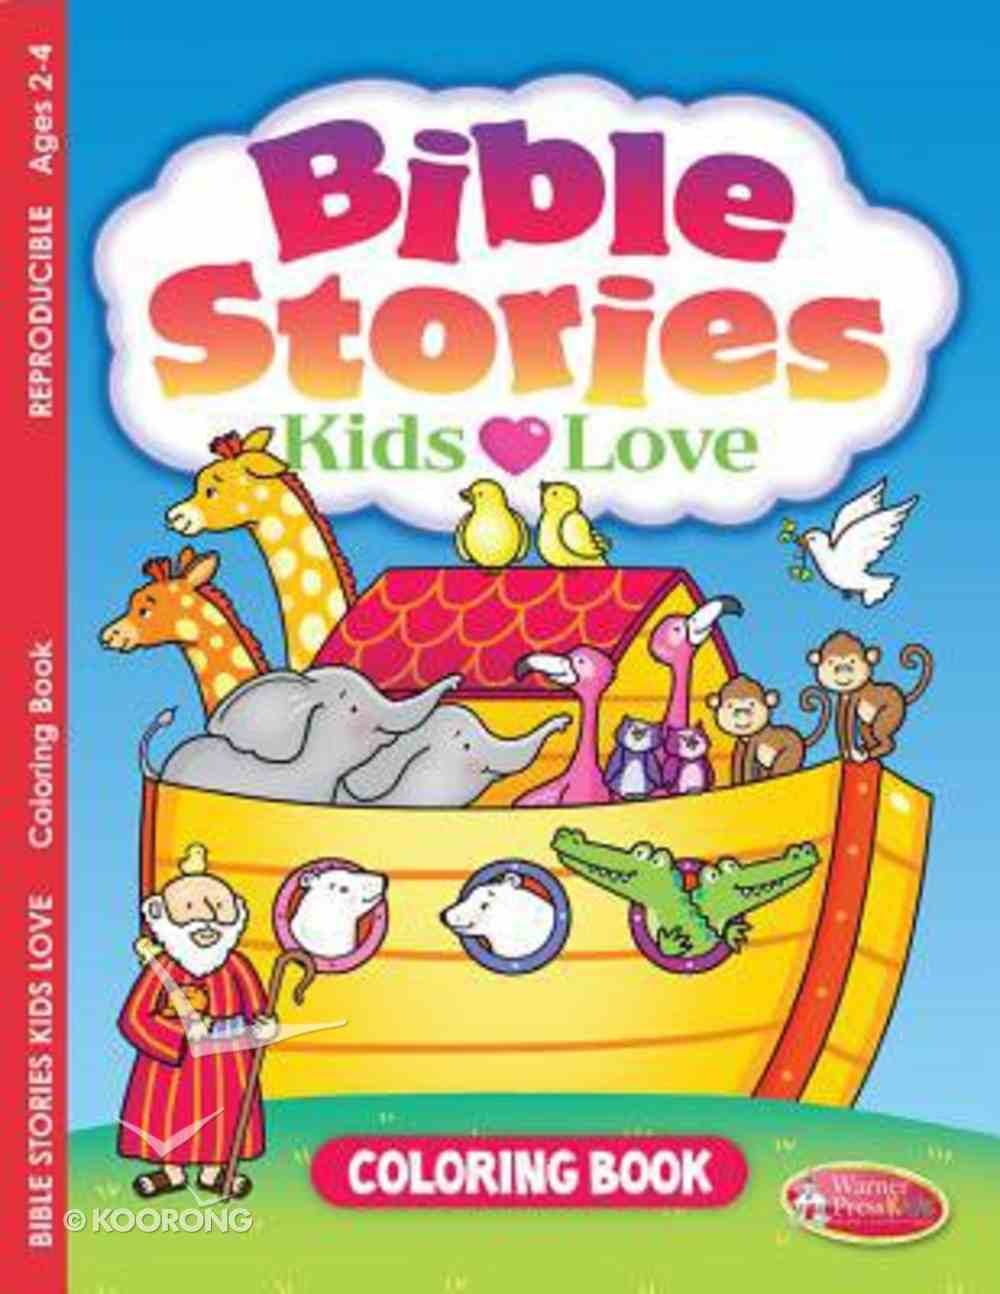 Bible Stories Kids Love (Ages 2-4, Reproducible) (Warner Press Colouring/activity Under 5's Series) Paperback